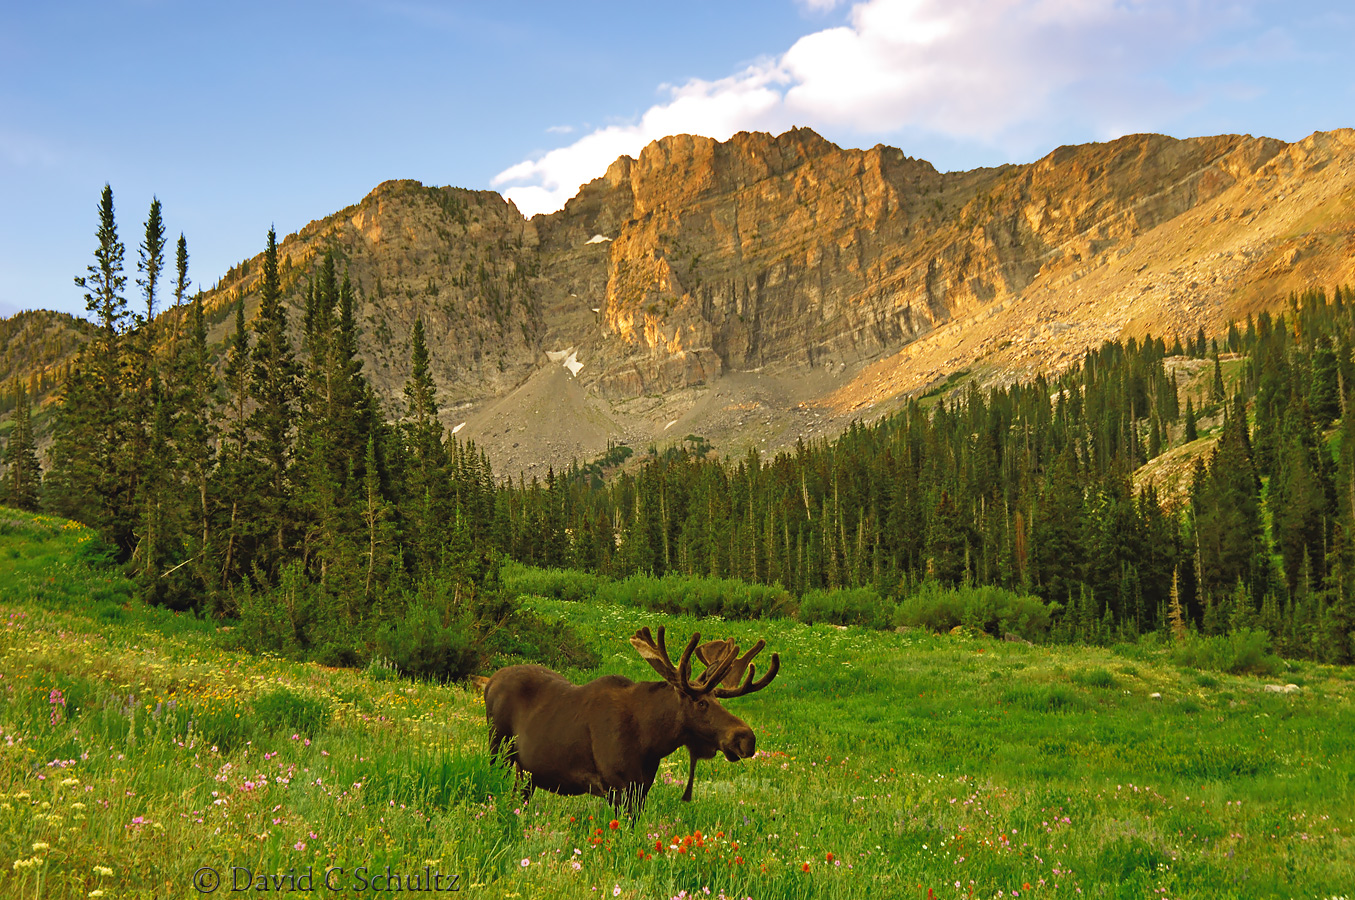 Bull moose at Albion Basin, Utah - Image #161-339